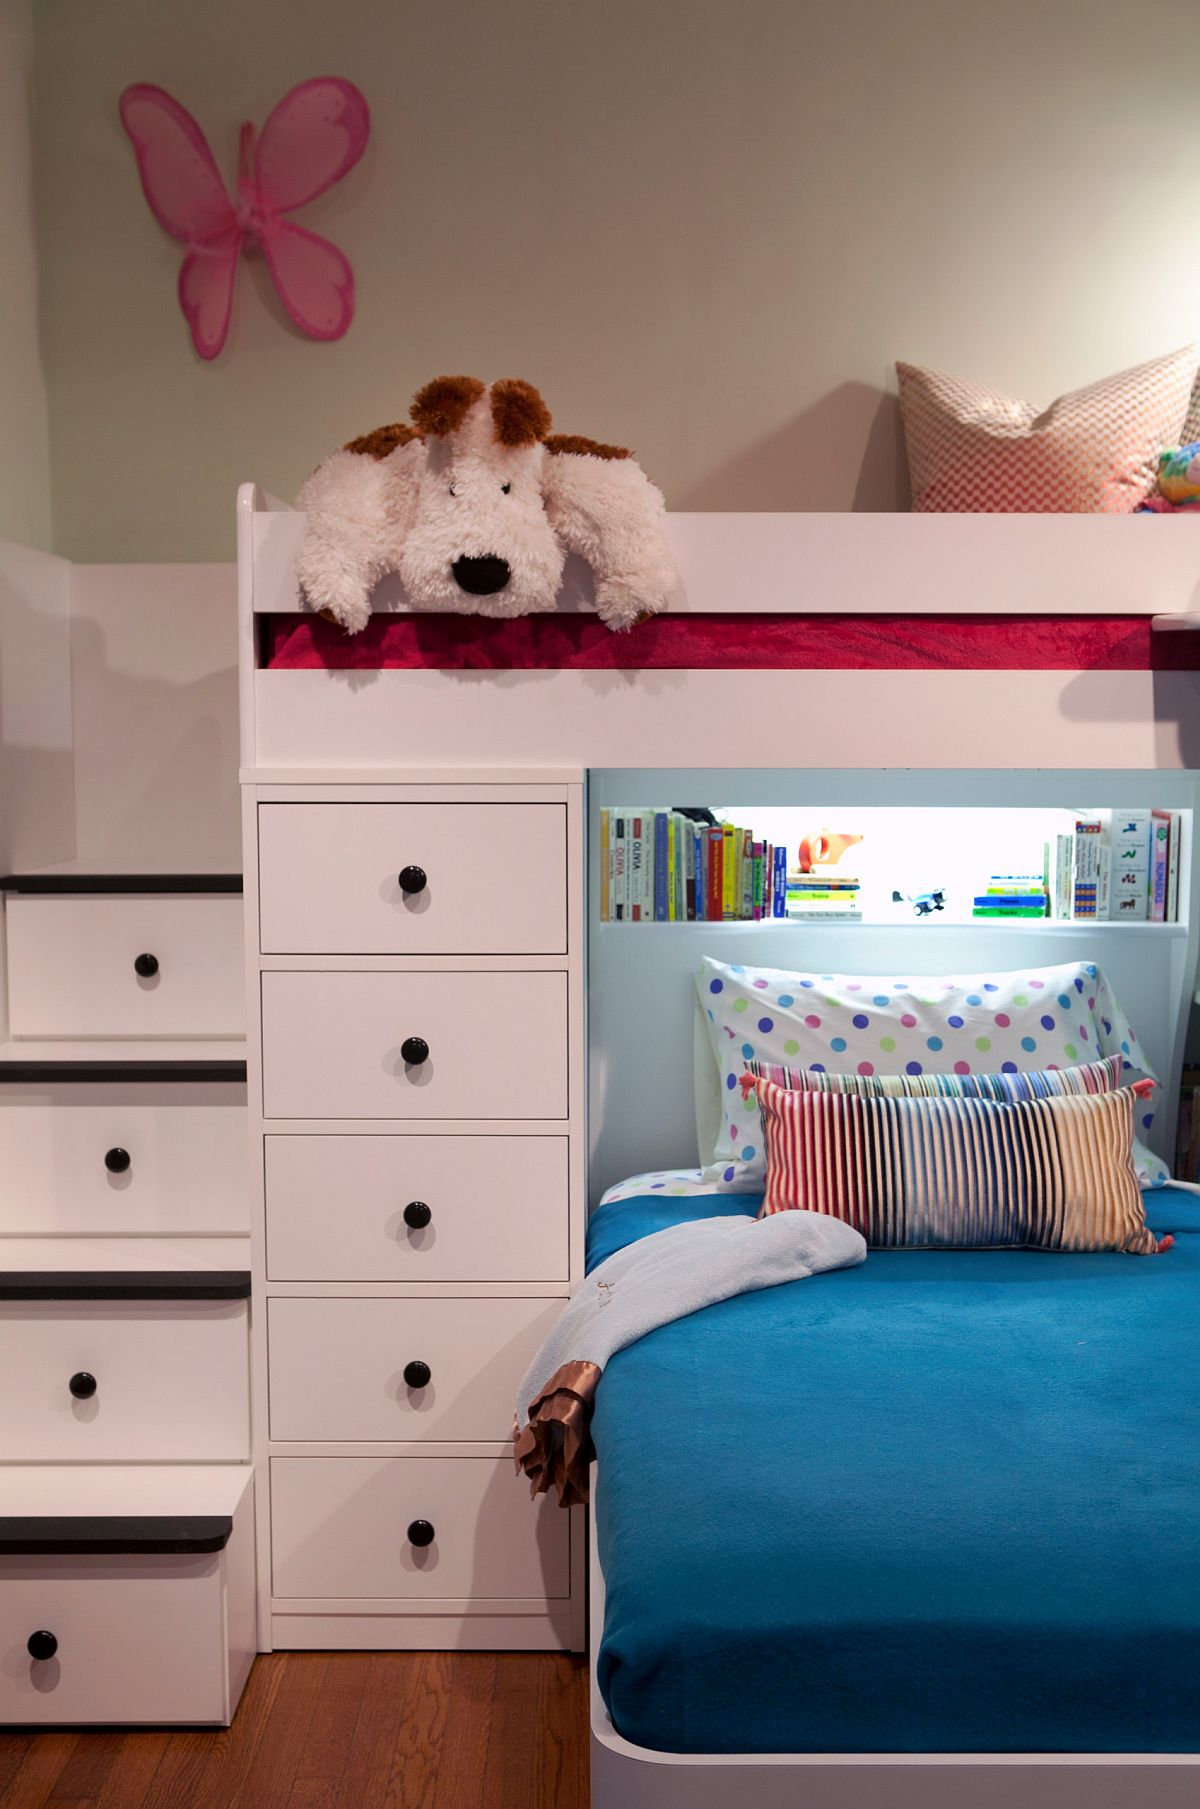 Steps-leading-to-the-loft-bed-in-the-kids-room-also-provide-additional-storage-space-63242